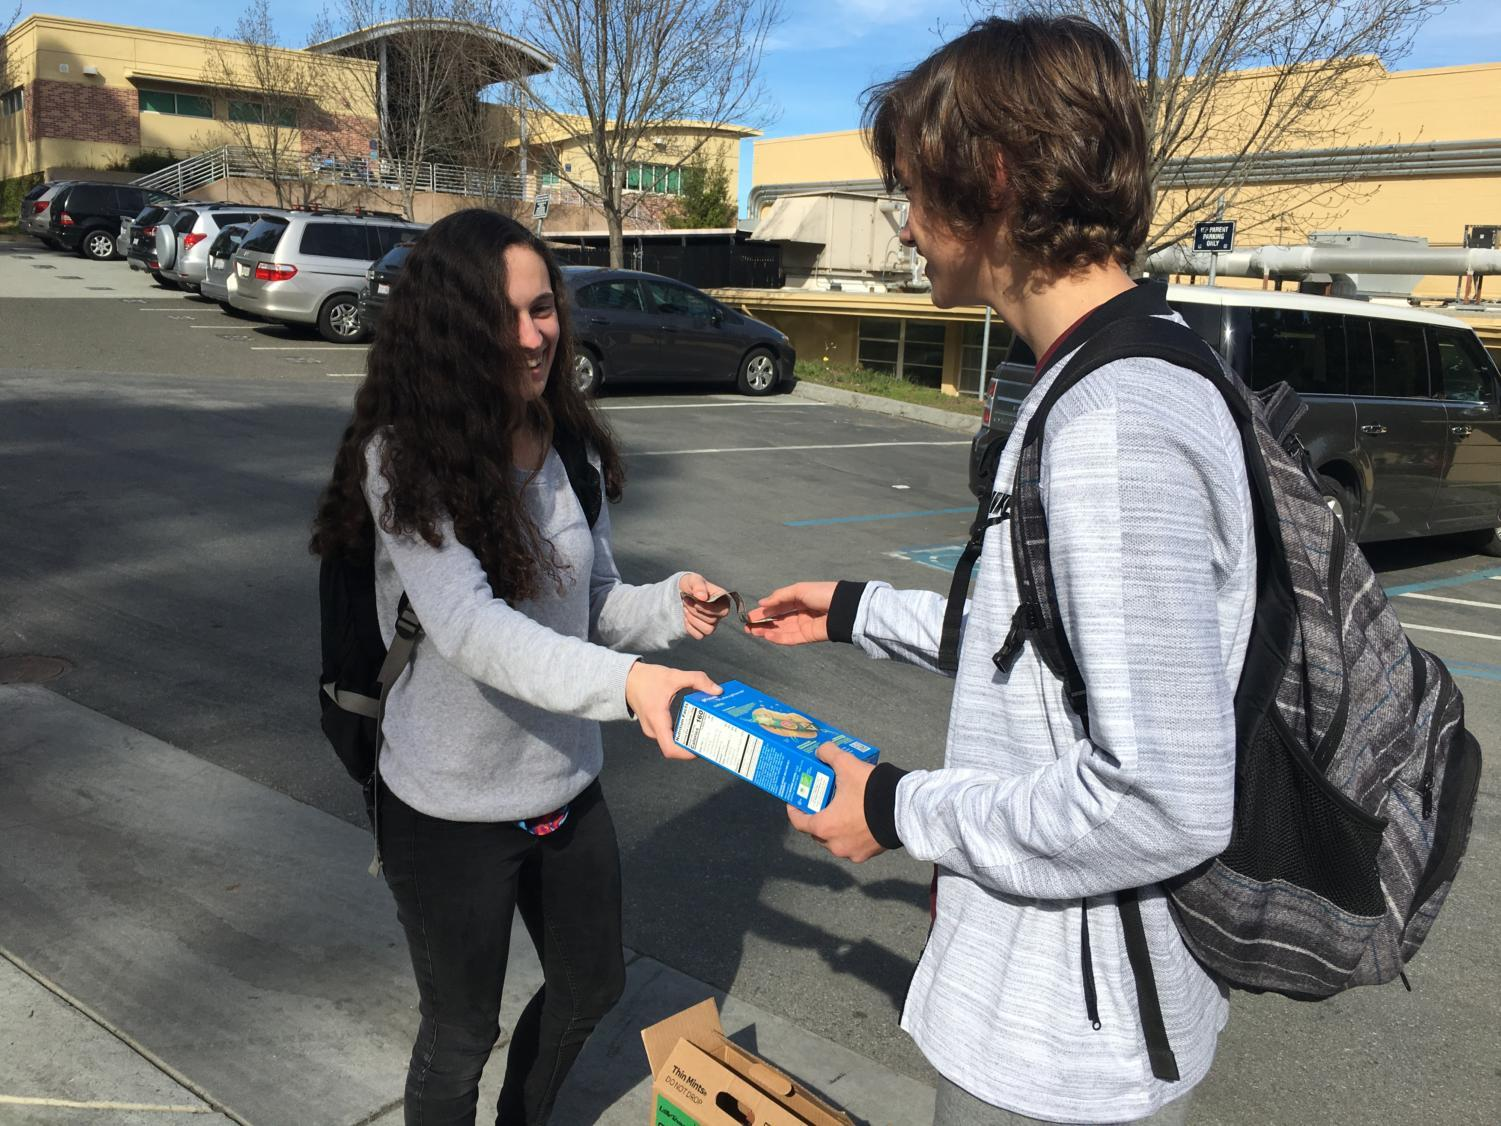 Luke Hendrickson, a sophomore, buys a box of Trefoils from Ana Alvarez-Rutz, a Girl Scout.